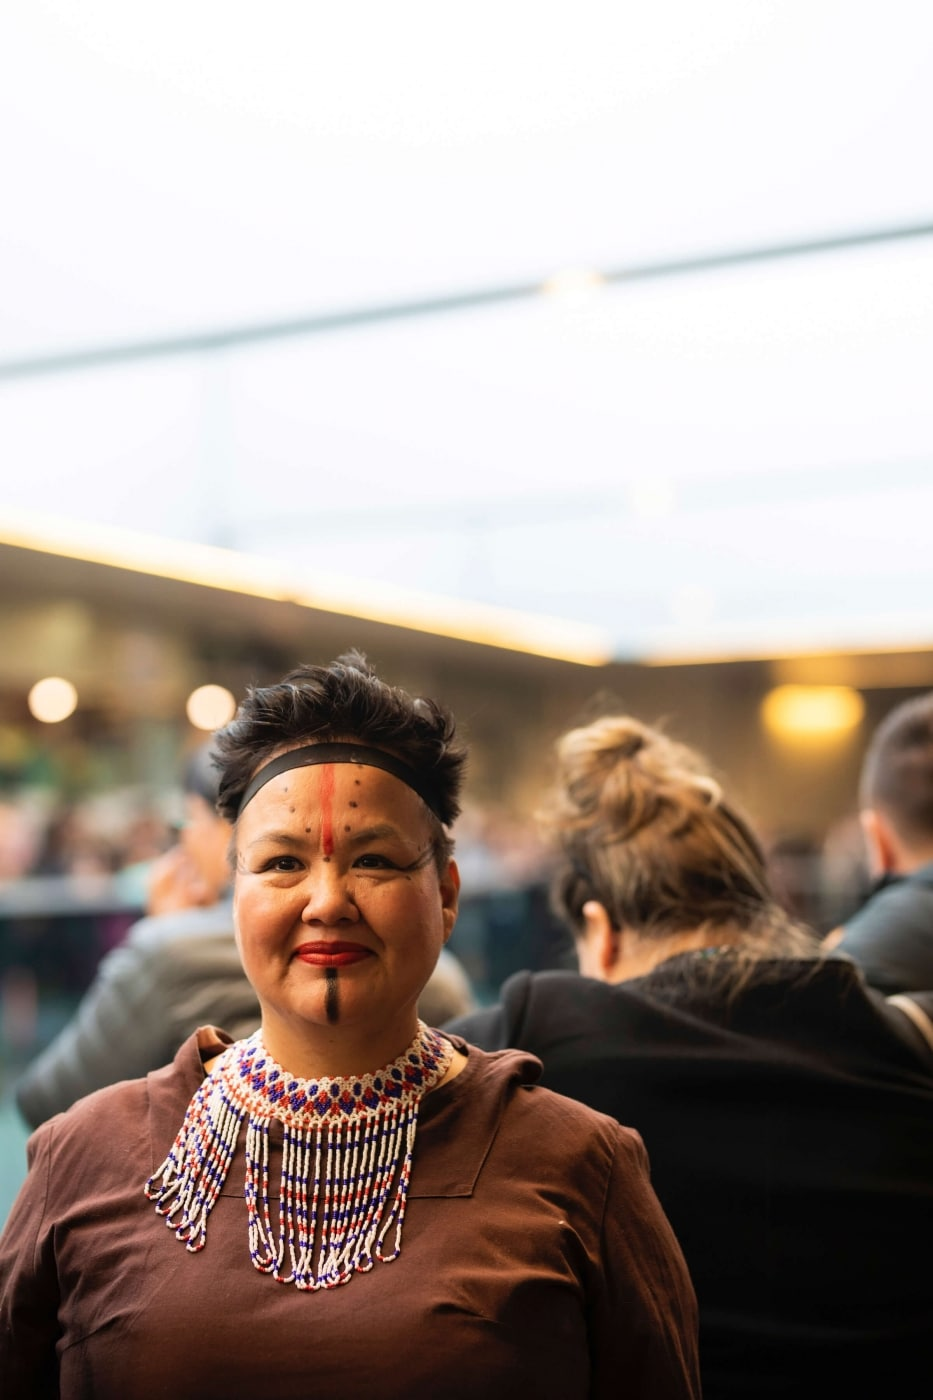 Nuuk Nordic Festival. Photo by Aningaaq Rosing Carlsen, Visit Greenland.